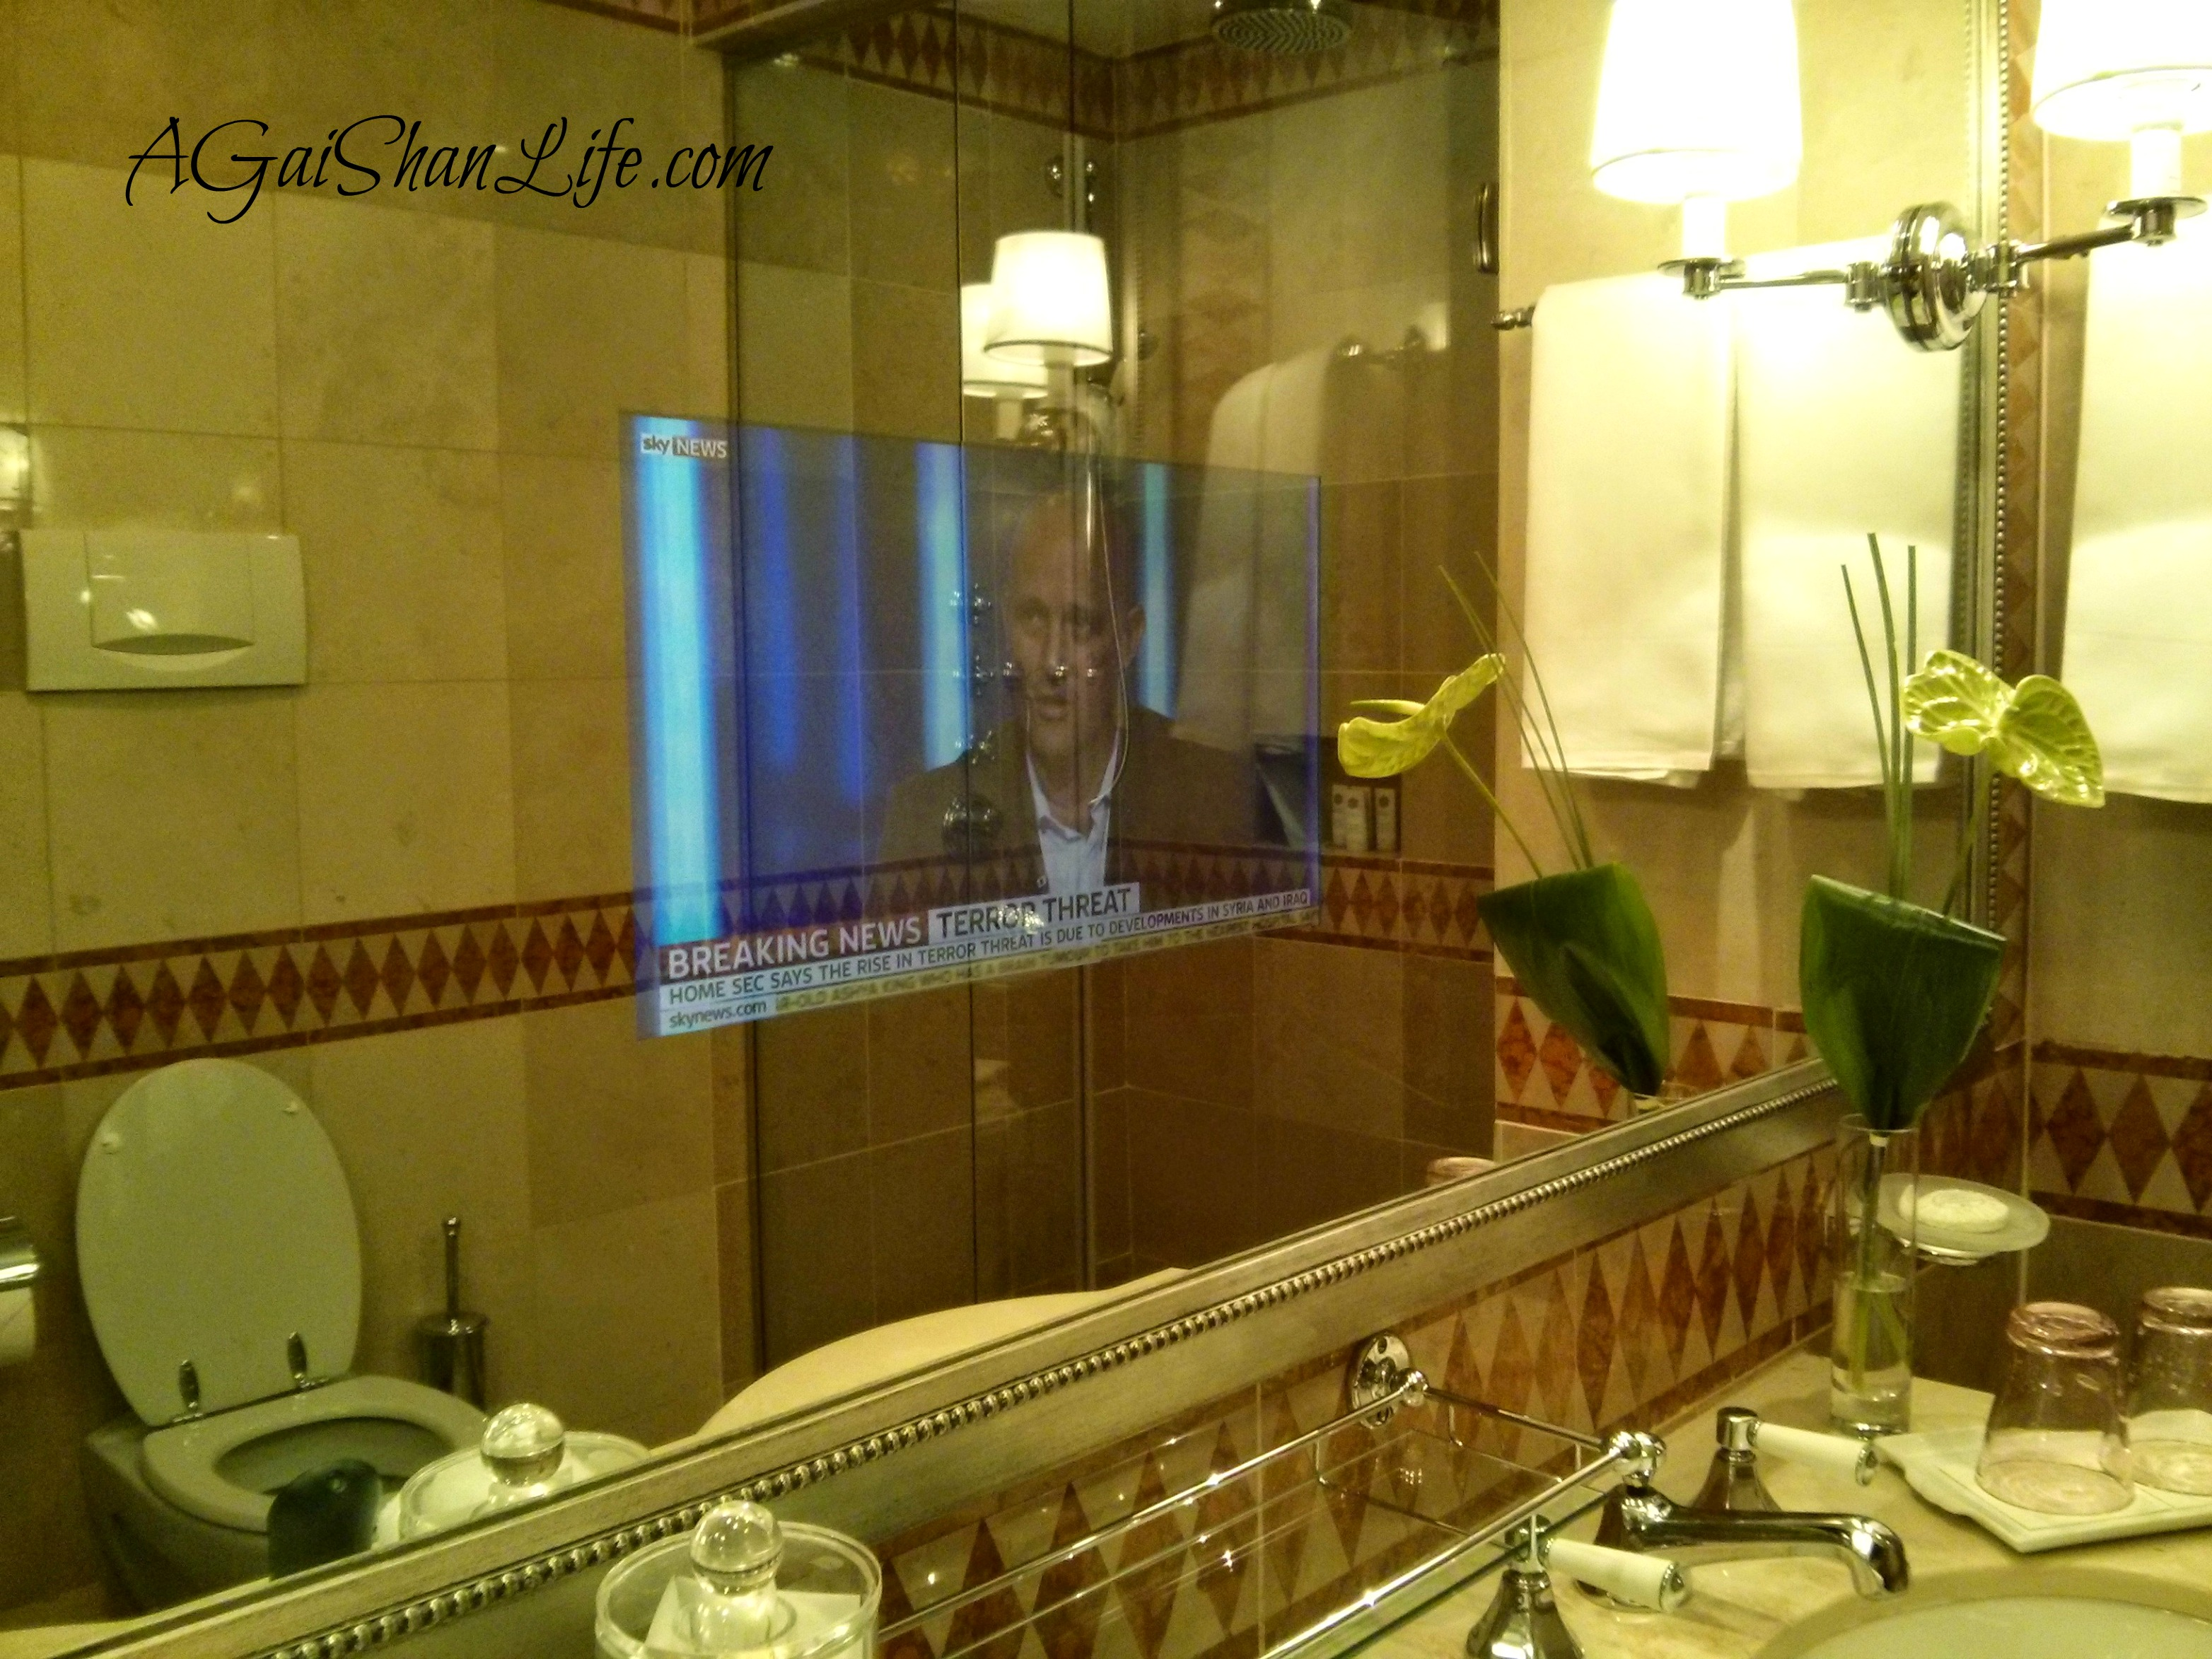 The fanciest hotel yet: a built in TV. In the bathroom mirror.